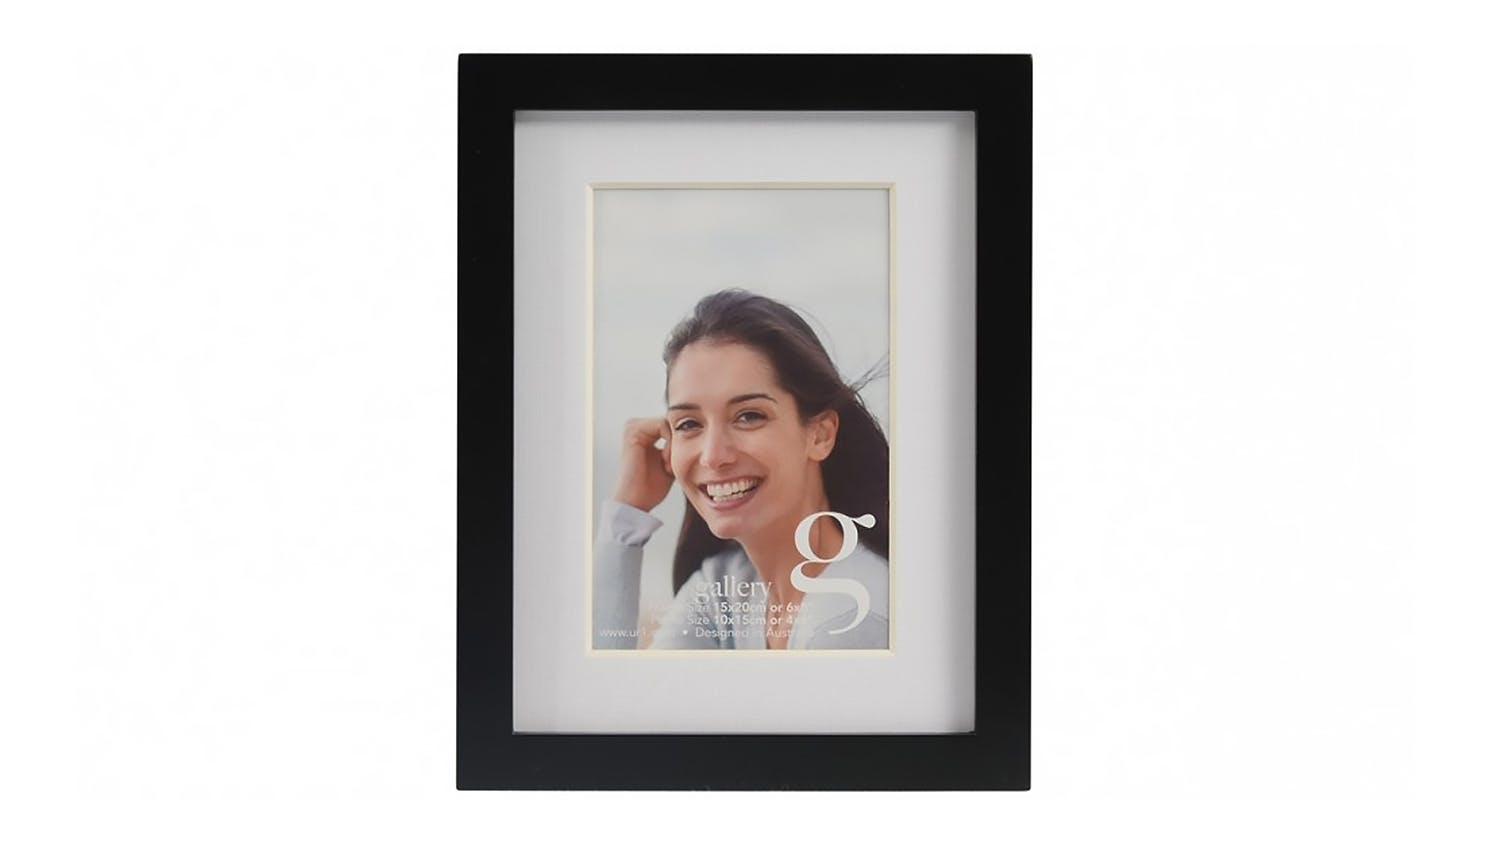 UR1 Gallery 6x8 Photo Frame with 4x6 Opening - Black